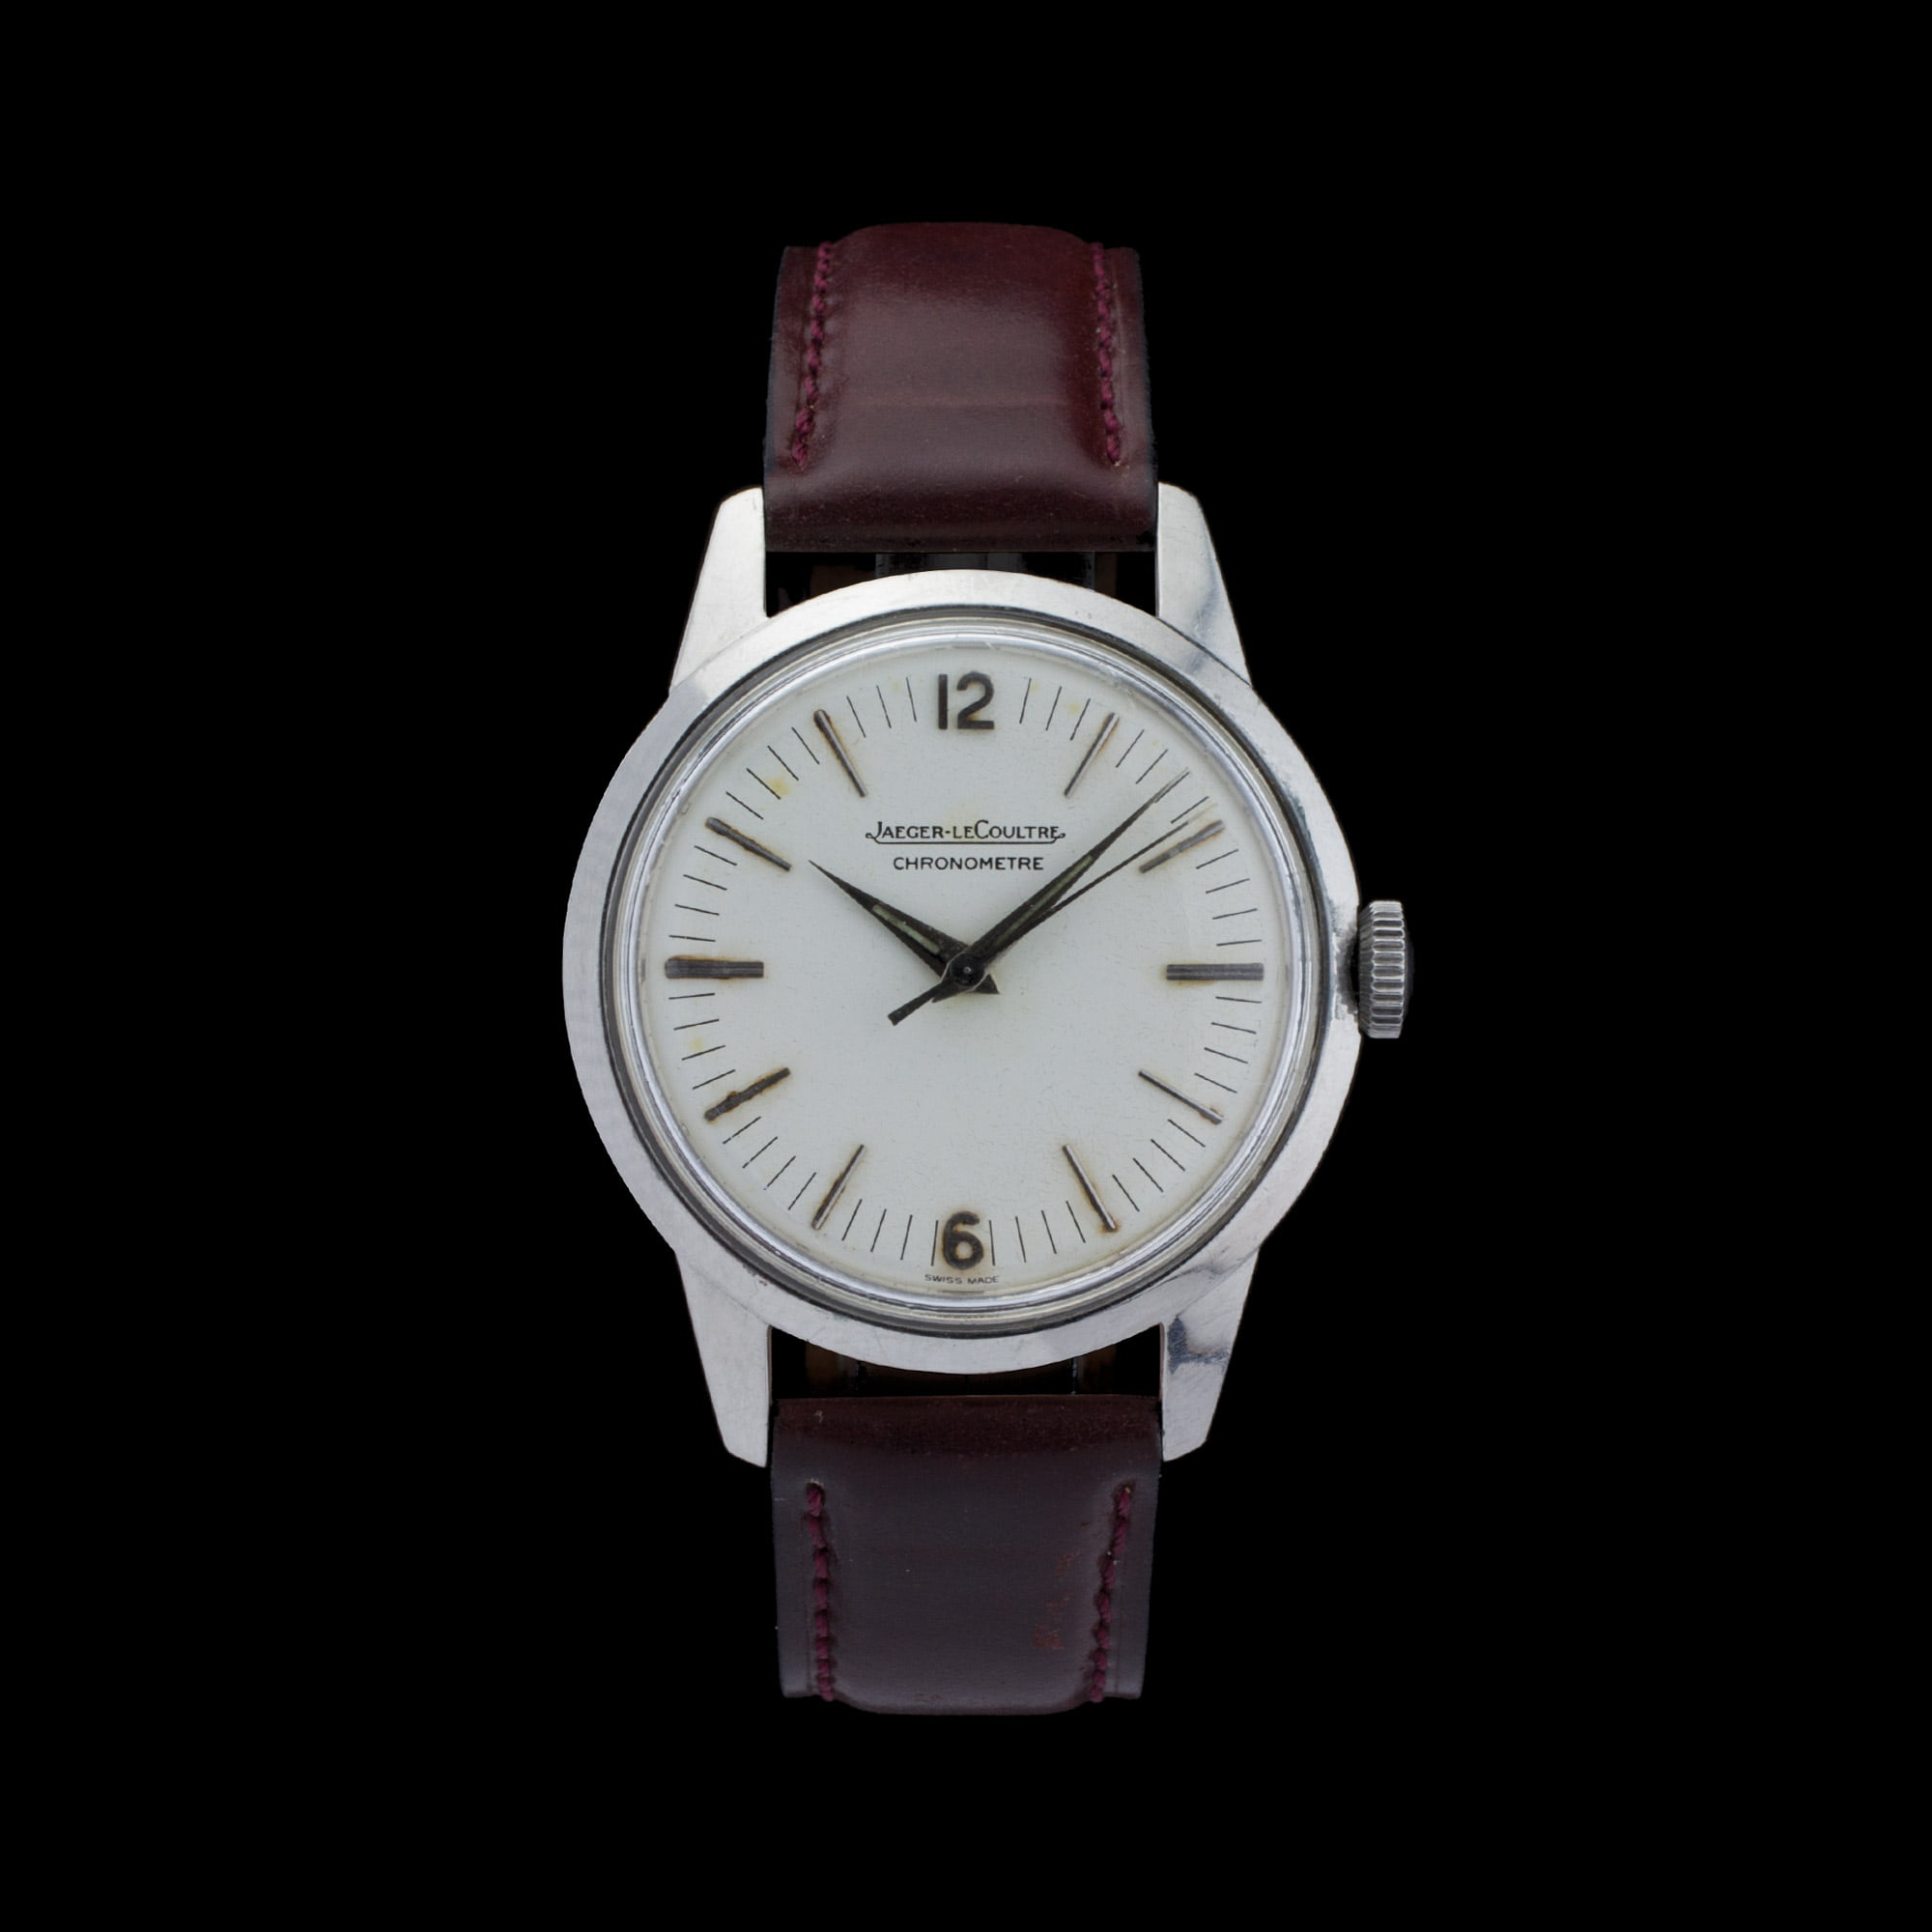 Jaeger lecoultre geophysic chronometre e168 amsterdam vintage watches for Geophysic watches